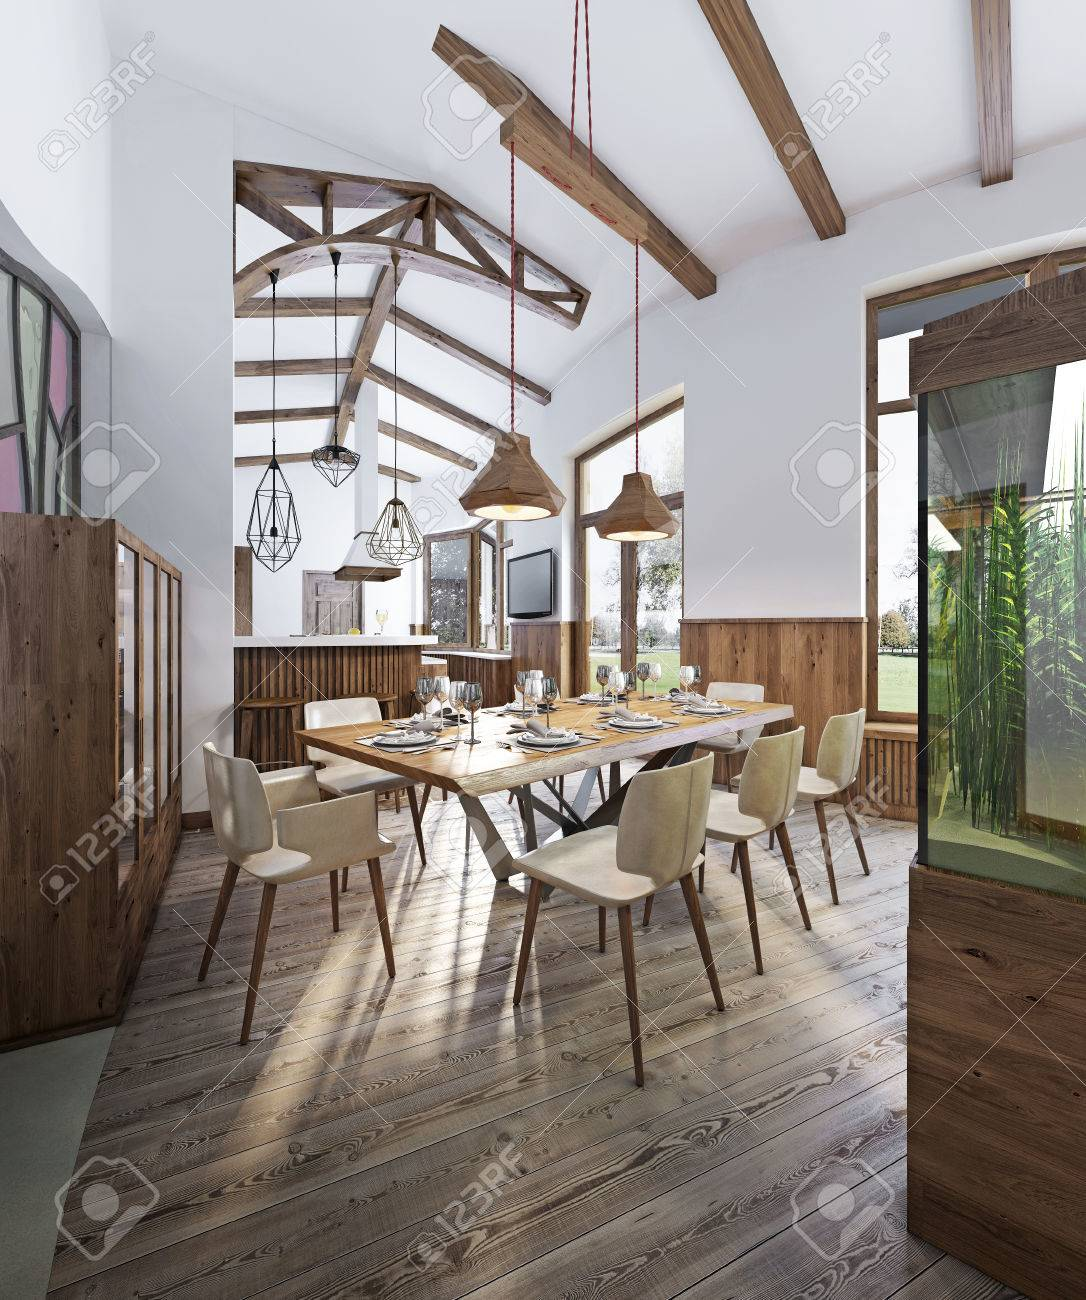 Good Dining Room With Large Dining Table And High Ceilings In The Loft. Dining  Smoothly Into